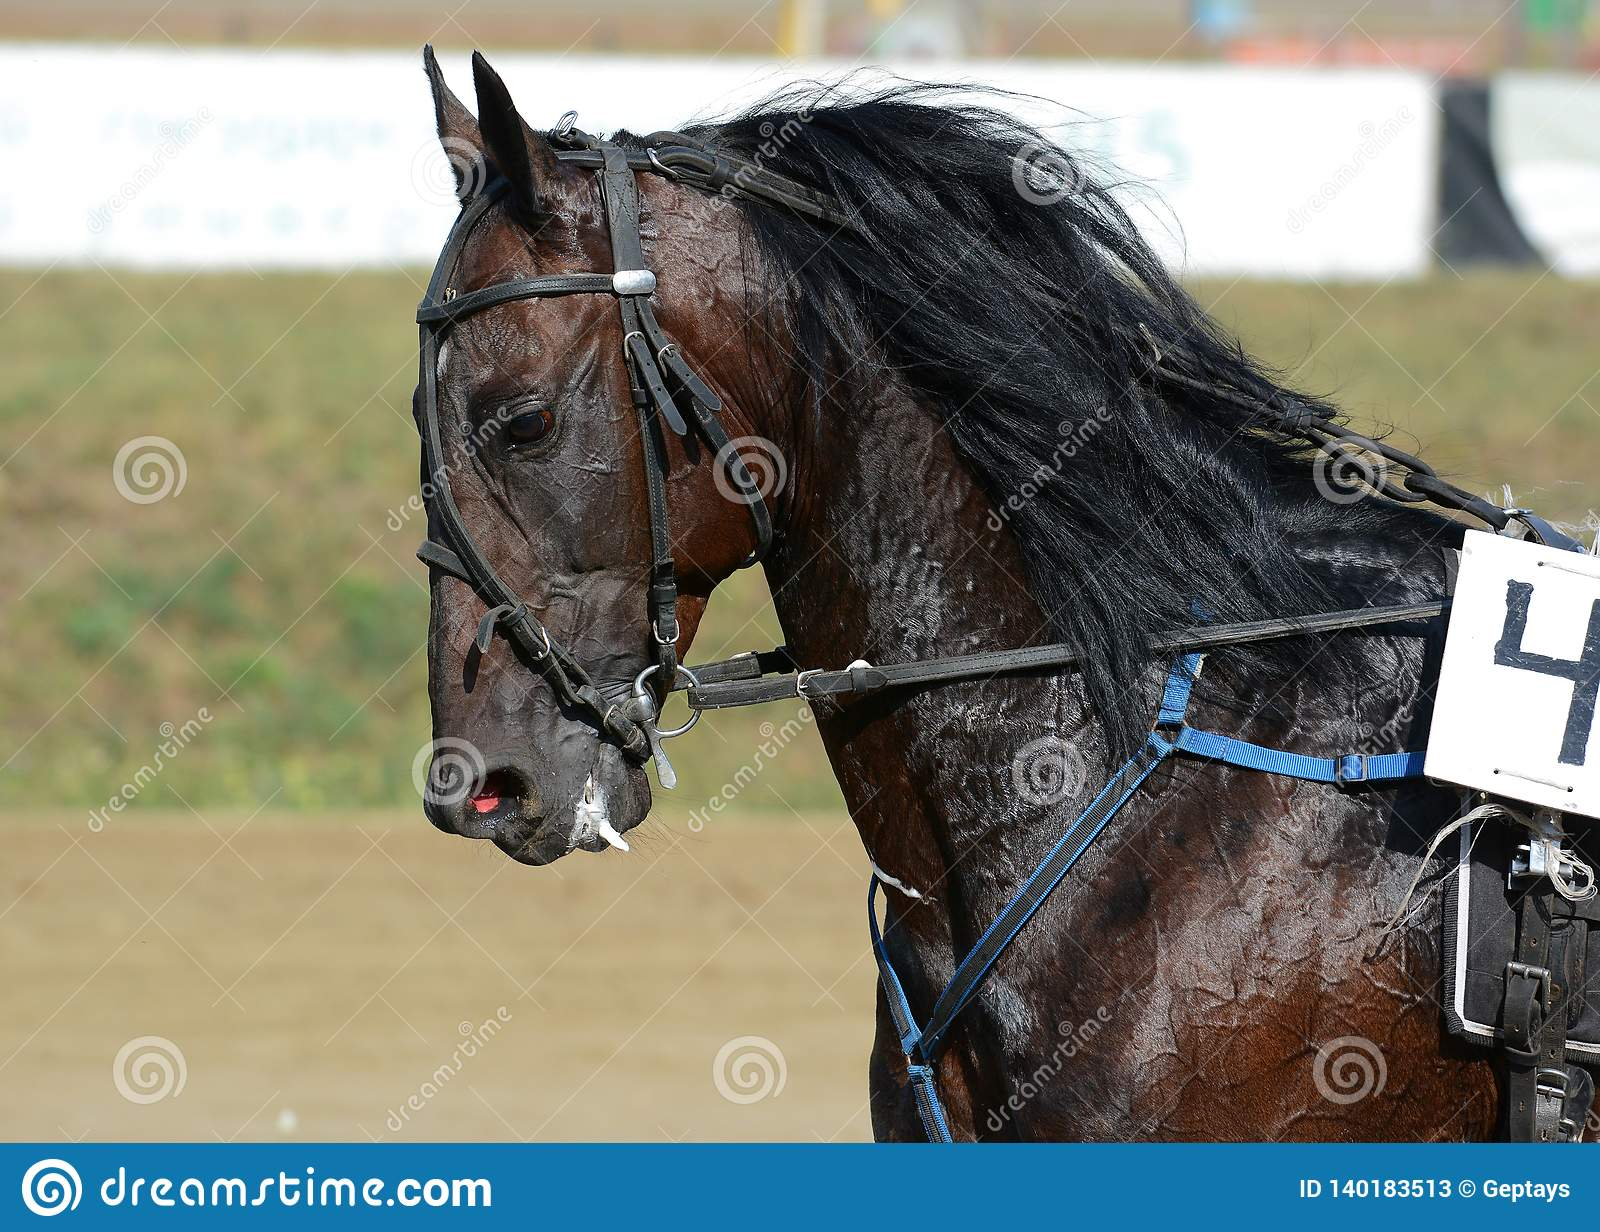 Potrait Of Strong Dark Bay Horse Trotter Breed In Motion On Hippodrome Stock Image Image Of Mammal Athlete 140183513